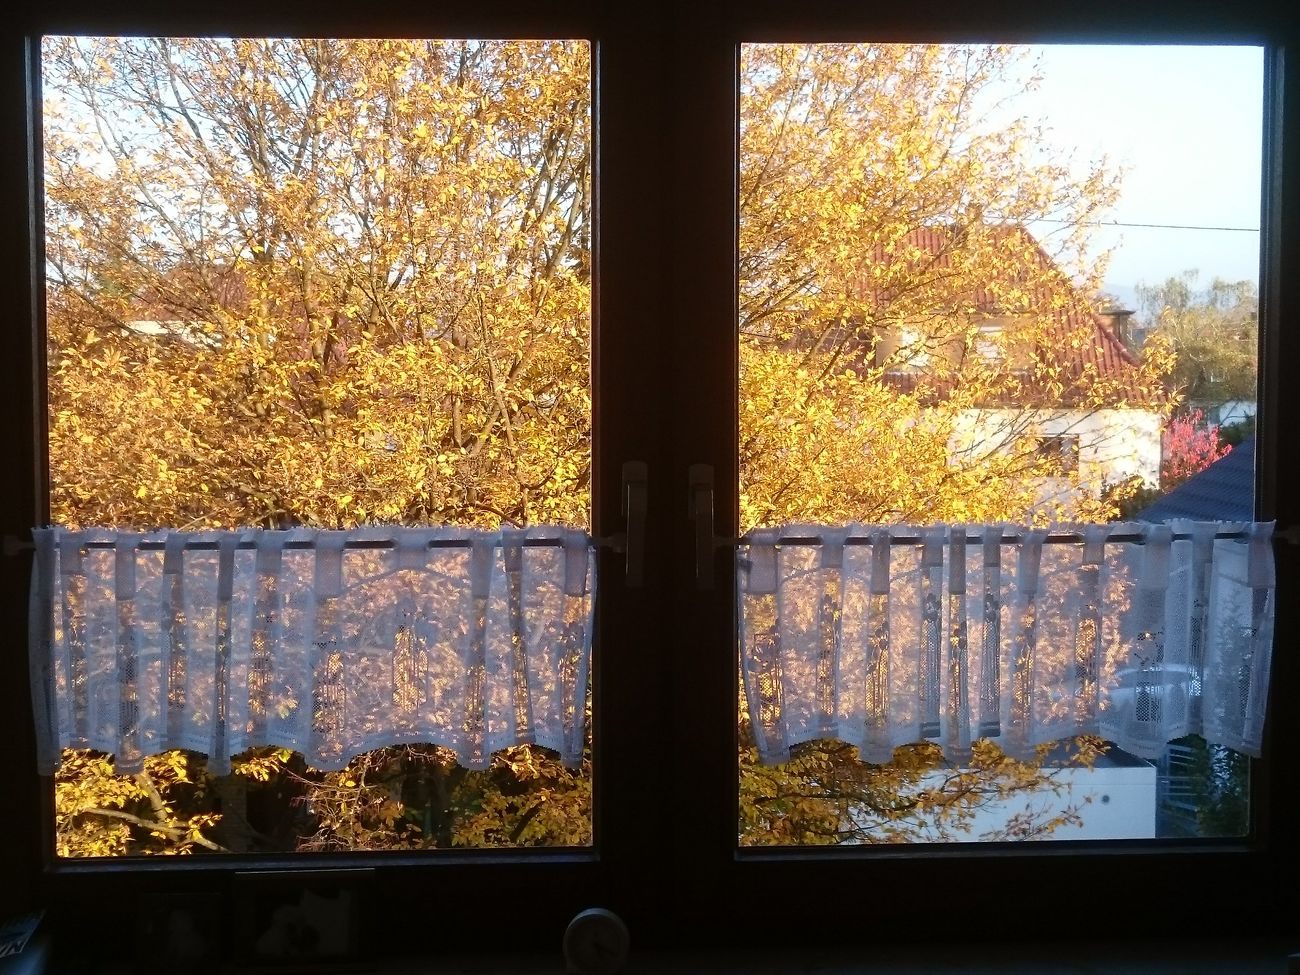 Window Transparent Indoors  No People Sky Nature Tree Sunlight And Shadows Colors Of Autumn Colorful Colour Of Life Autumn Autumn Leaves Authentic Moments Autumn🍁🍁🍁 Fall Colors Fall